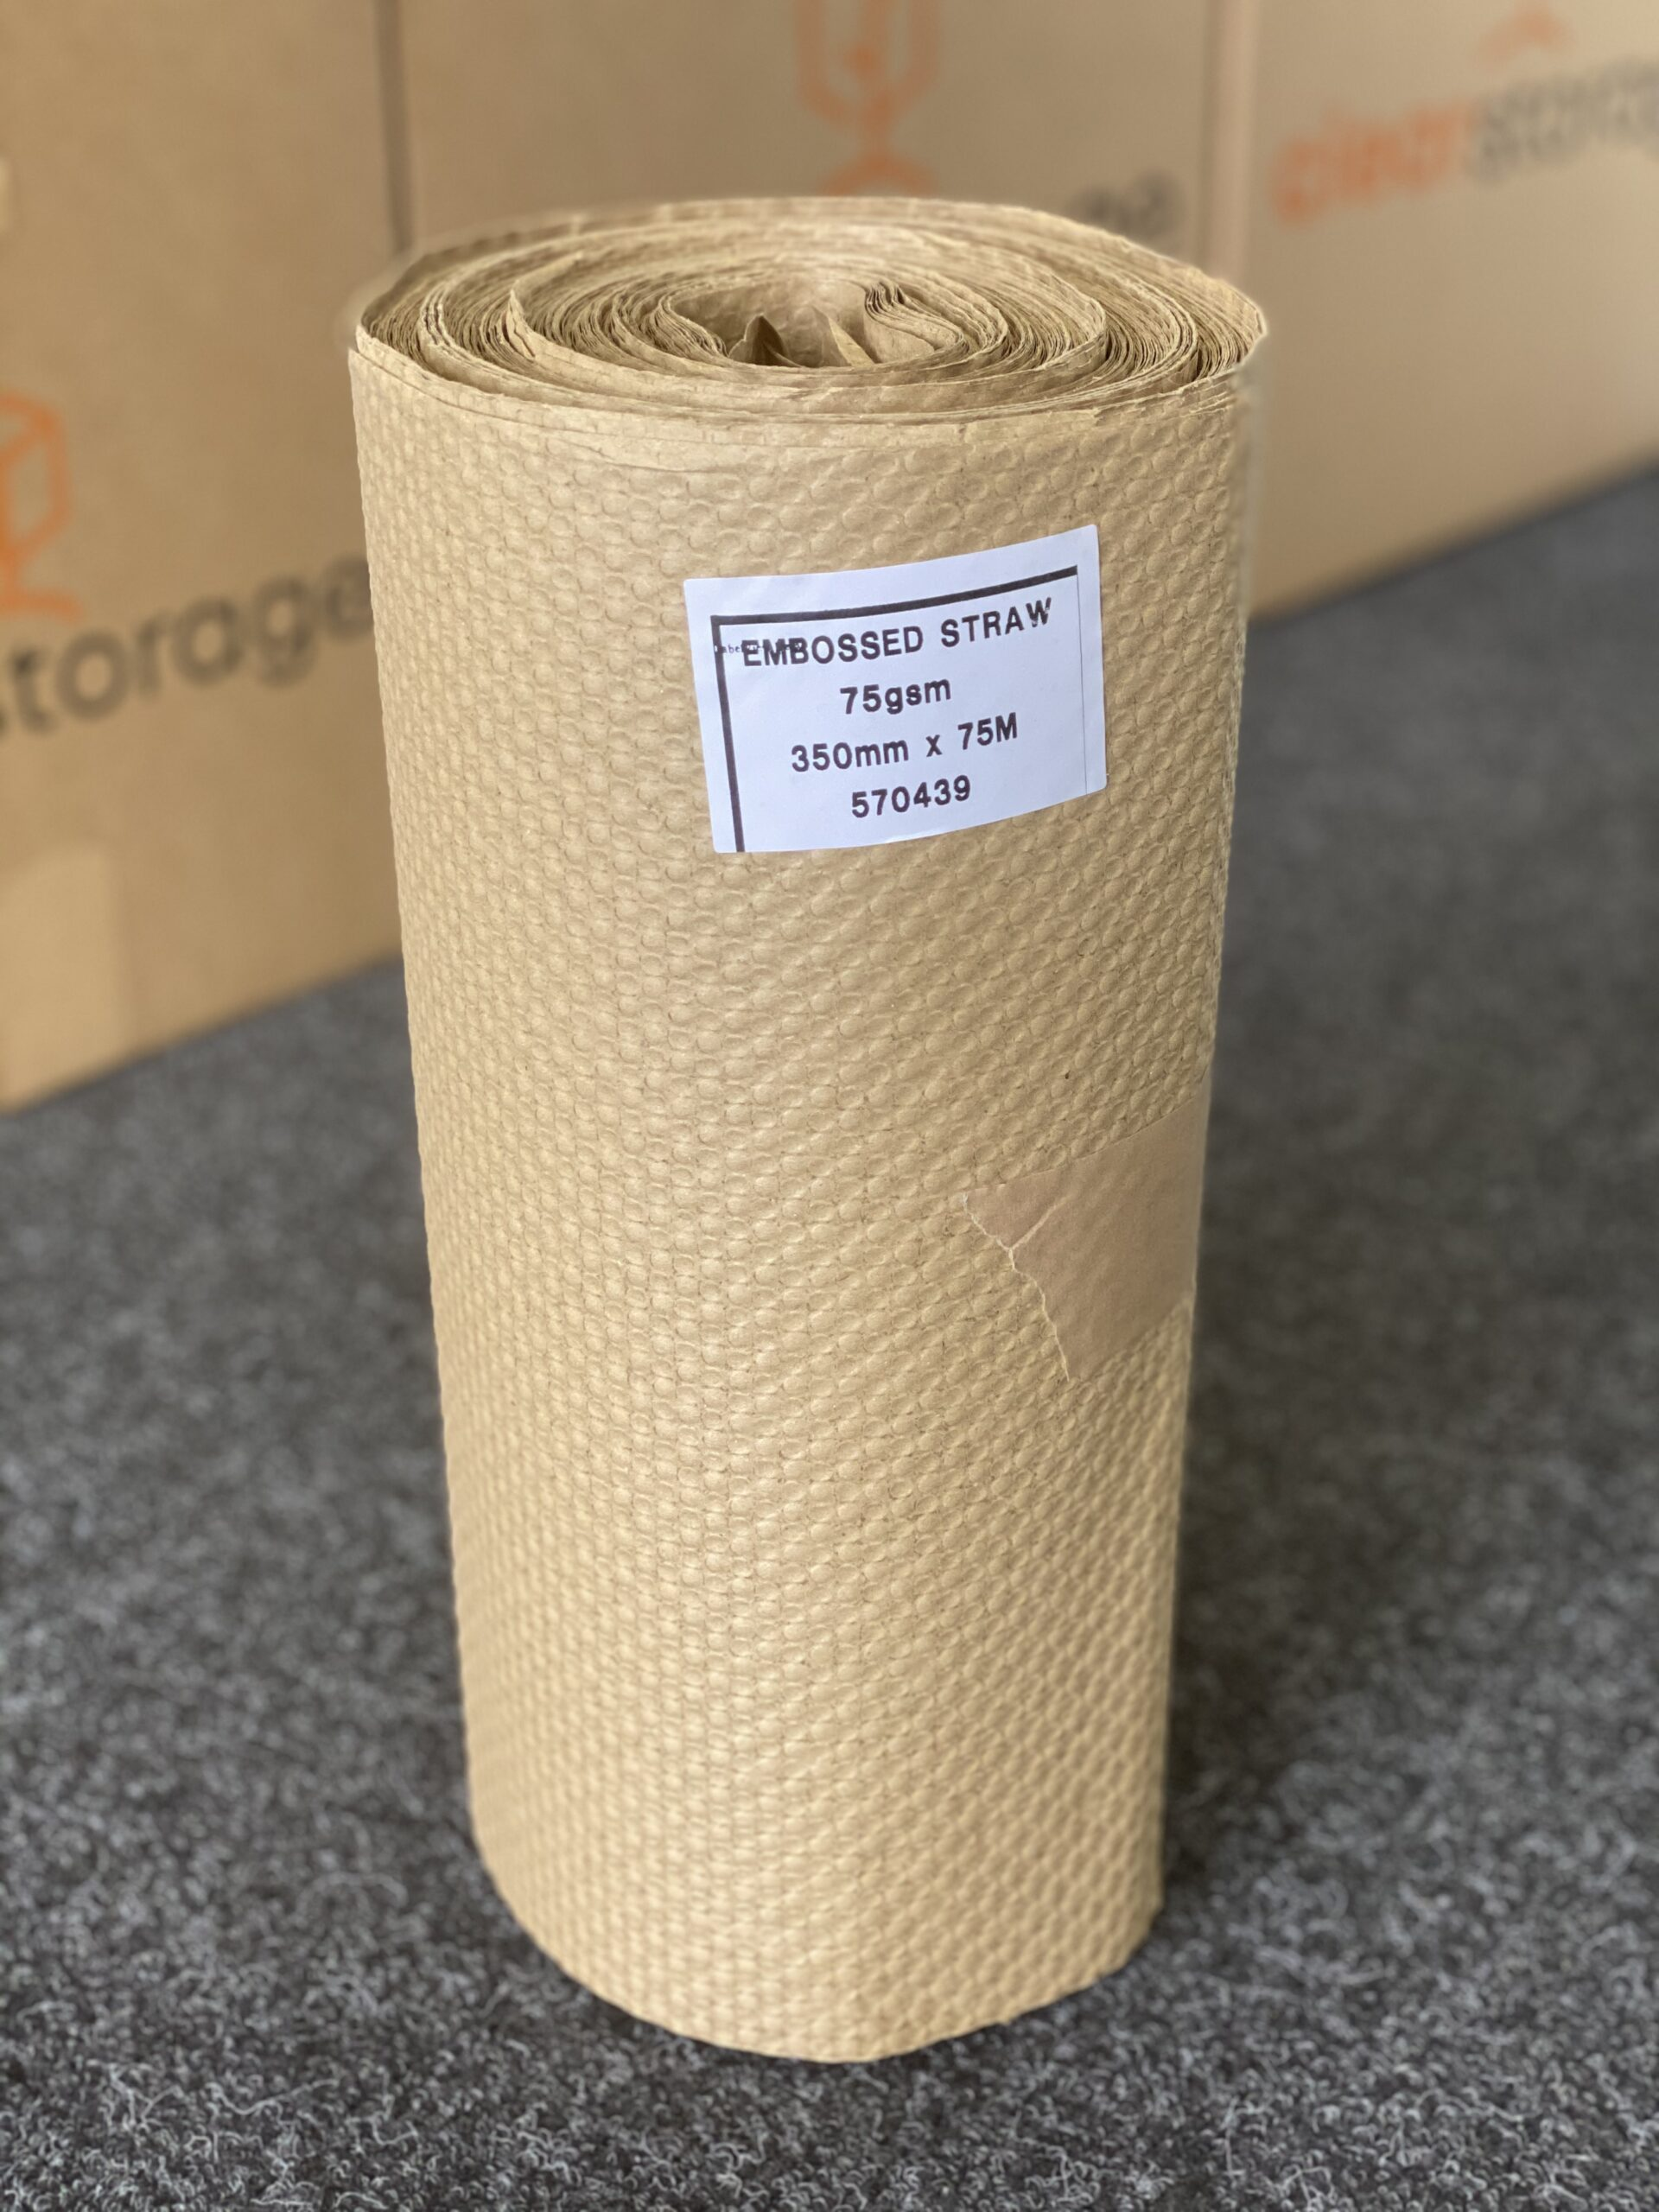 Recycled Puff Packaging For Storage